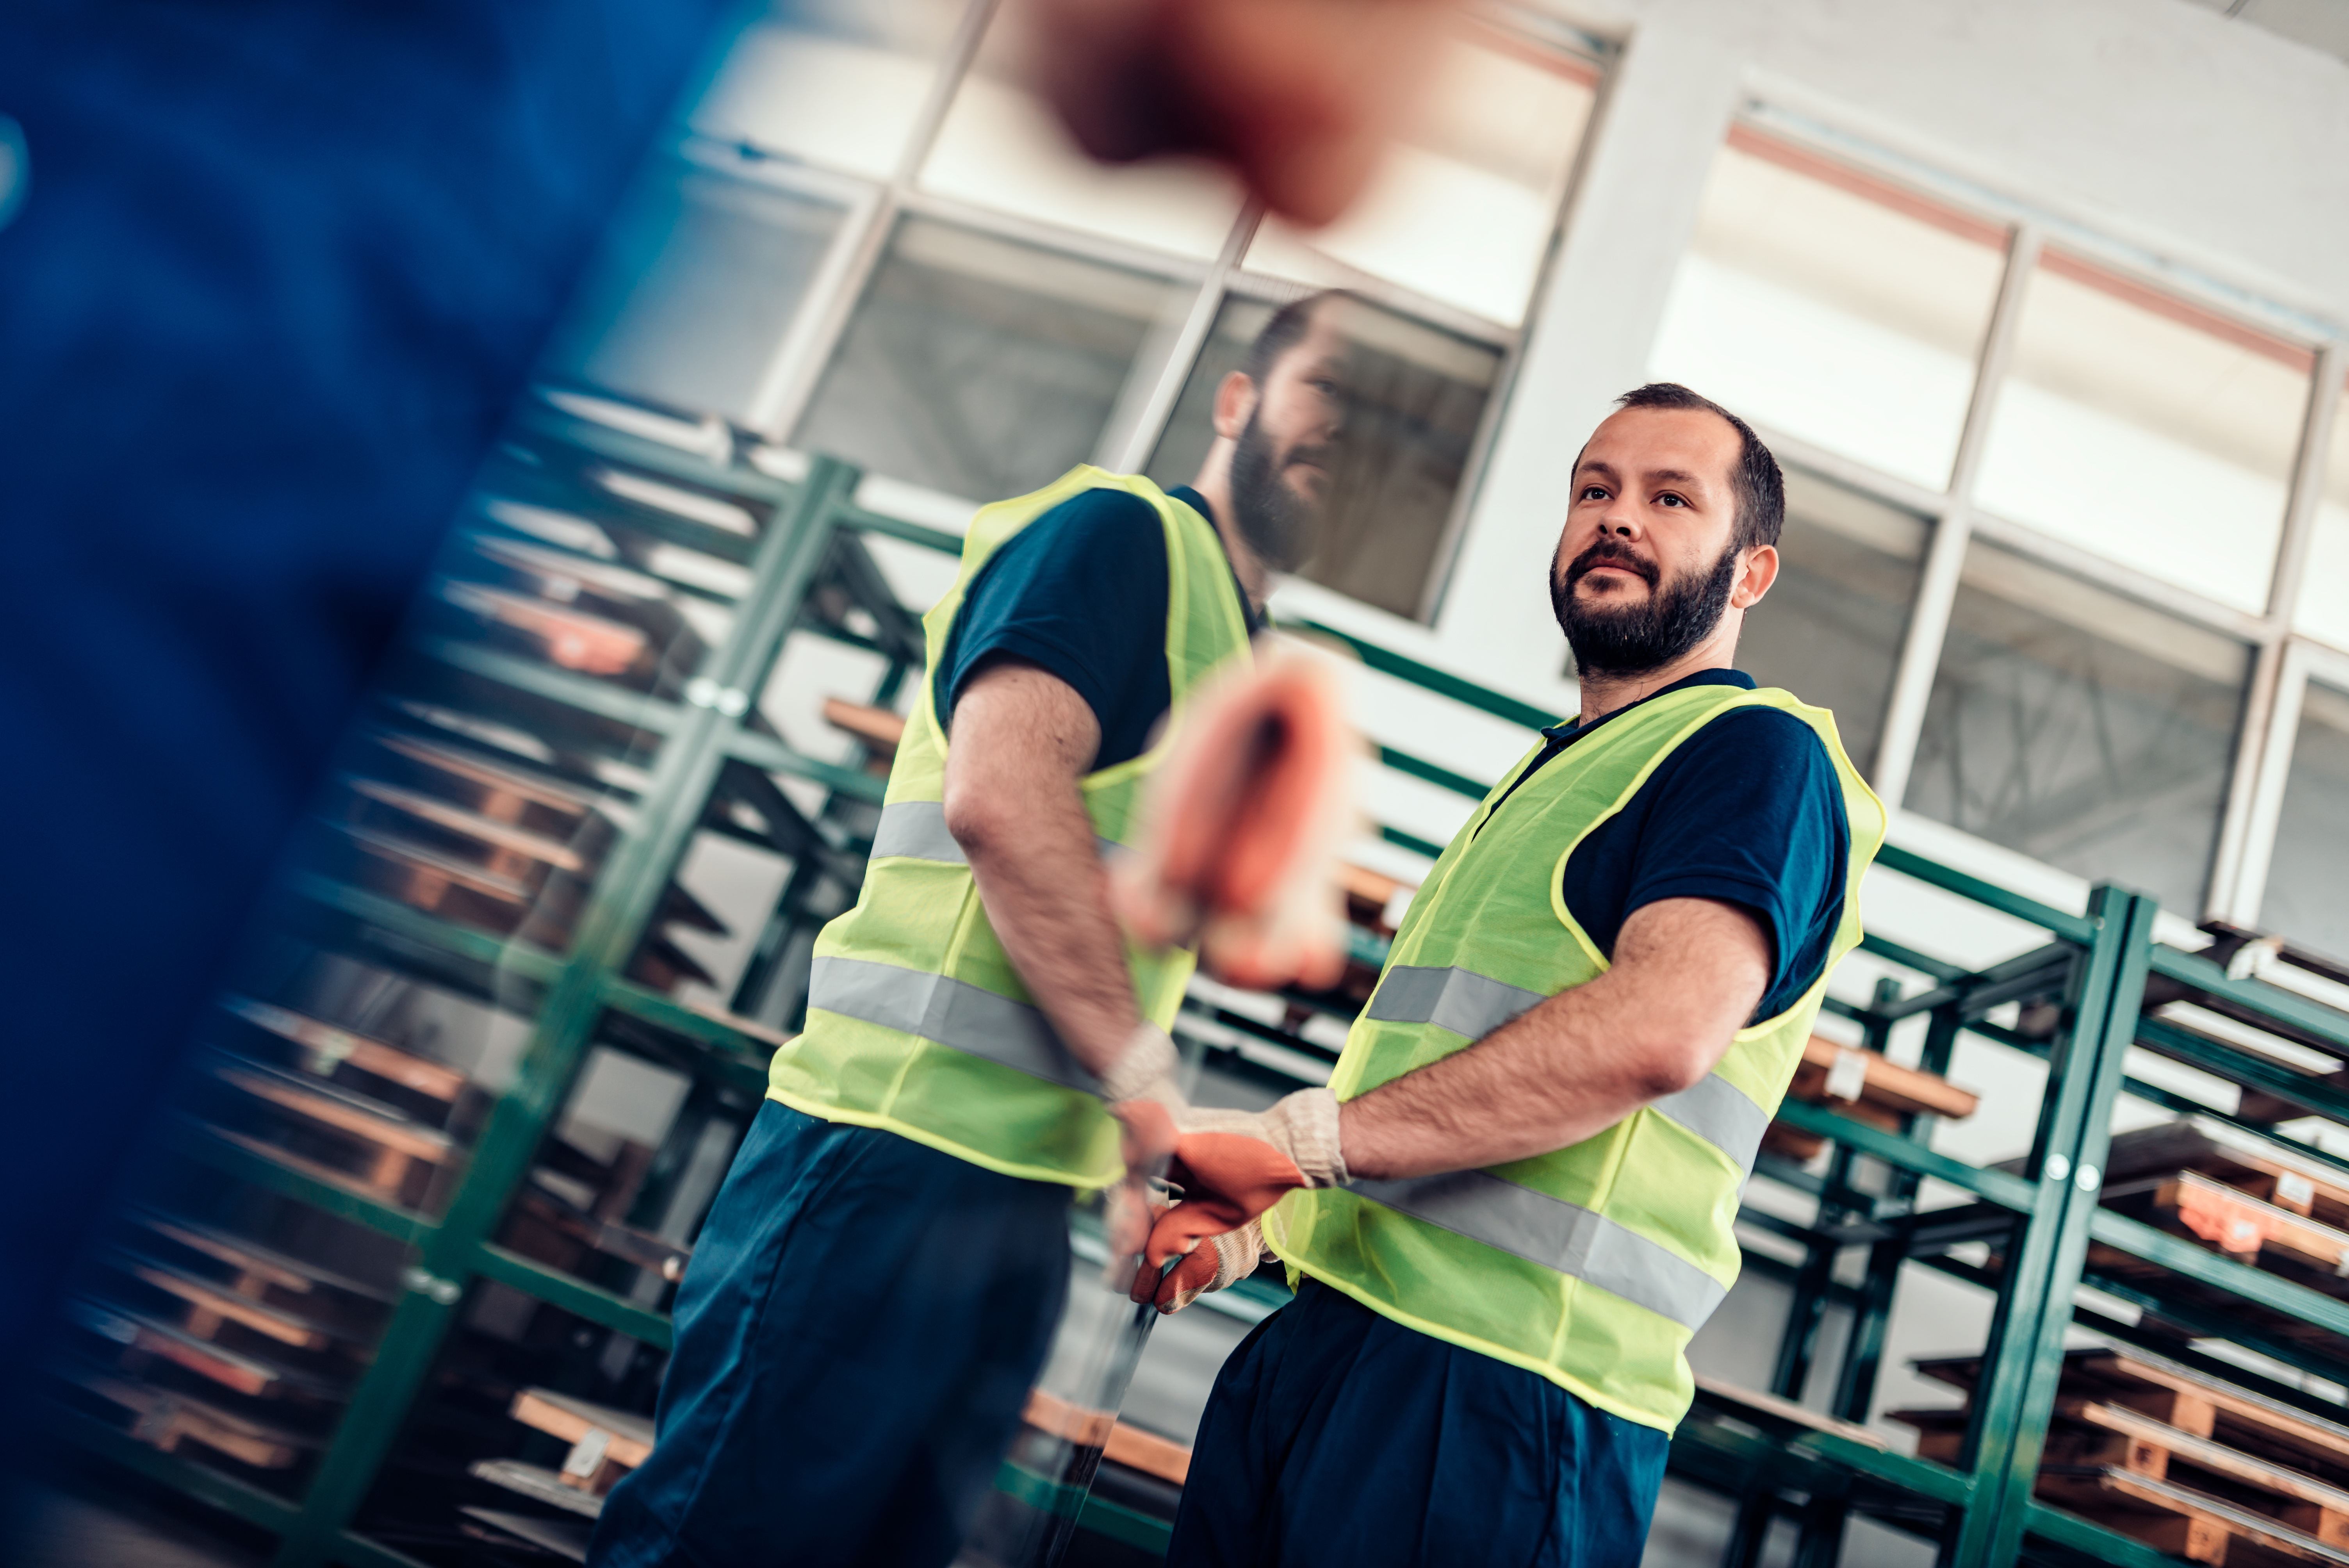 Man working in a retail warehouse